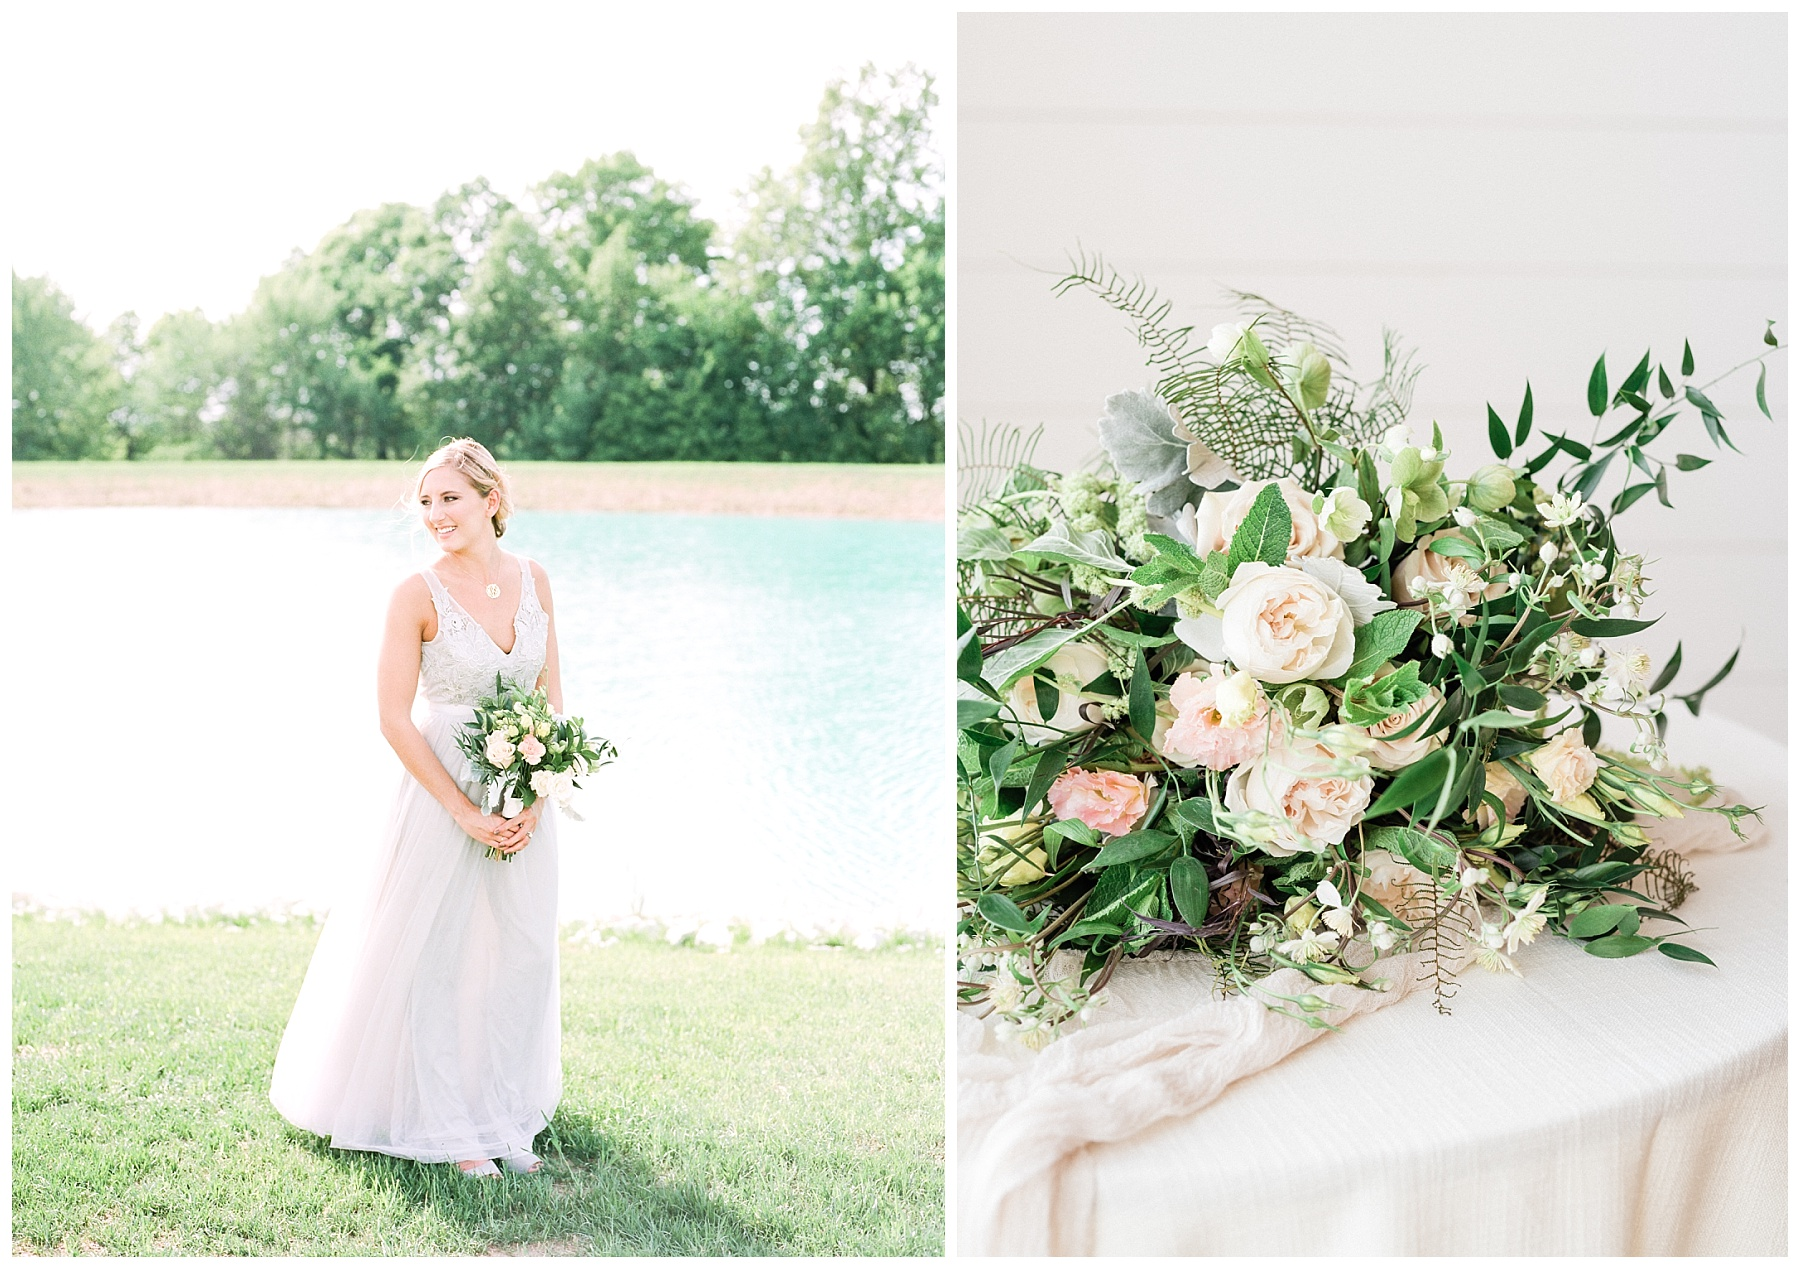 Textural Organic Wedding in All White Venue by Kelsi Kliethermes Wedding Photographer - Missouri, Midwest, and Destinations_0054.jpg